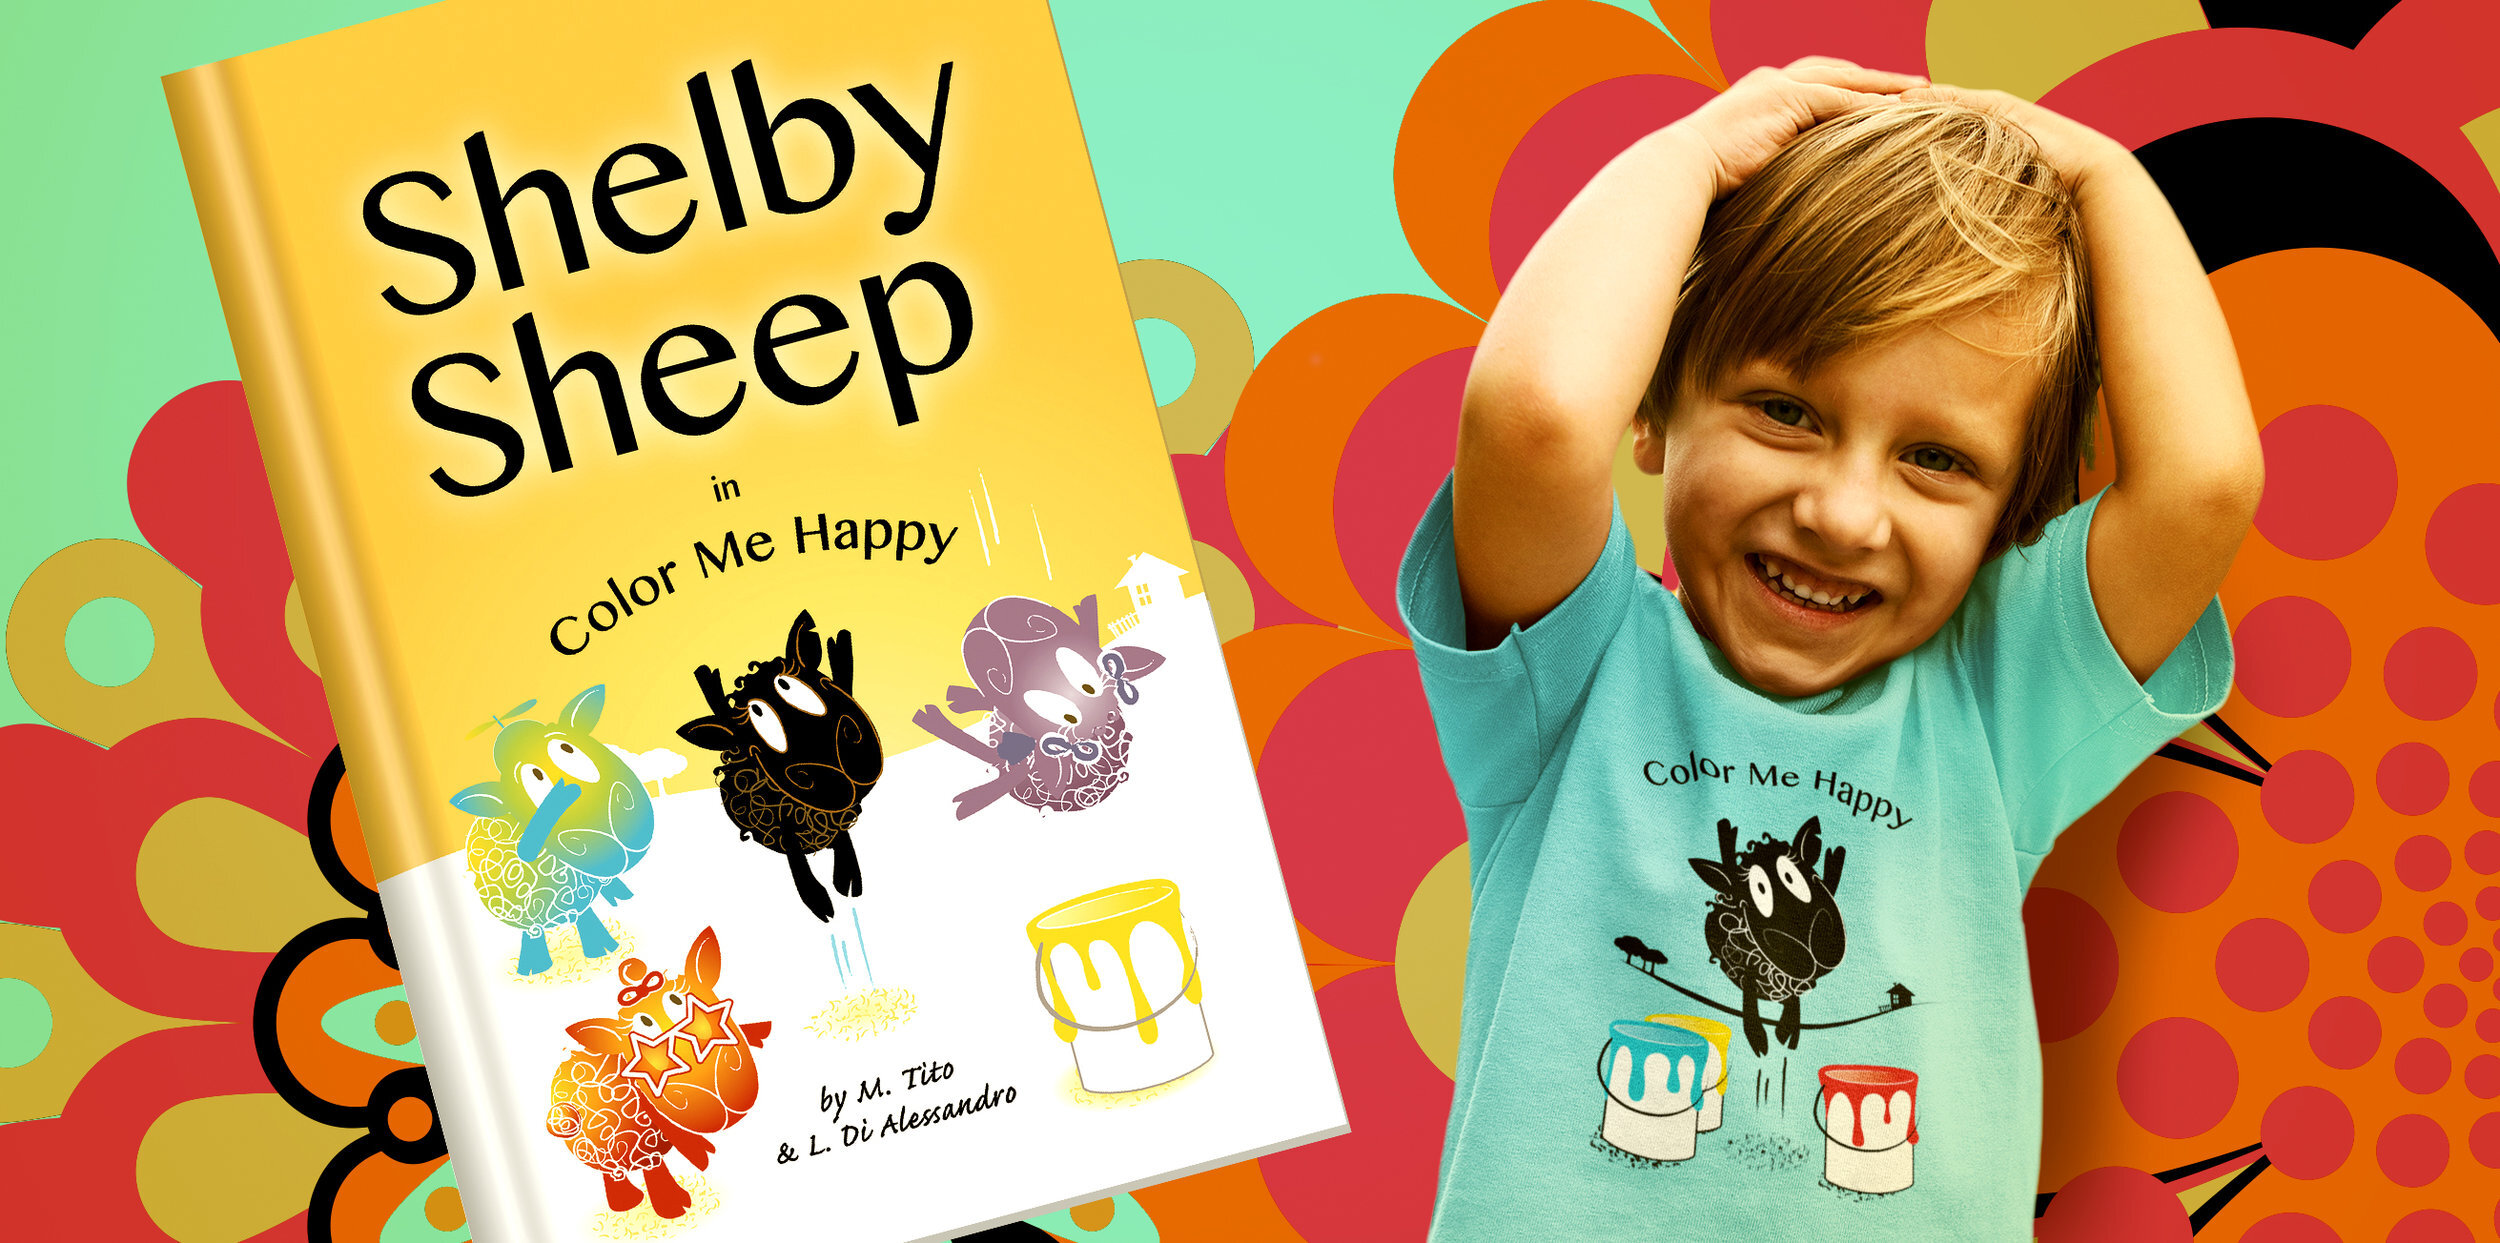 Early-Learning-Childrens-Picture-Books.jpg